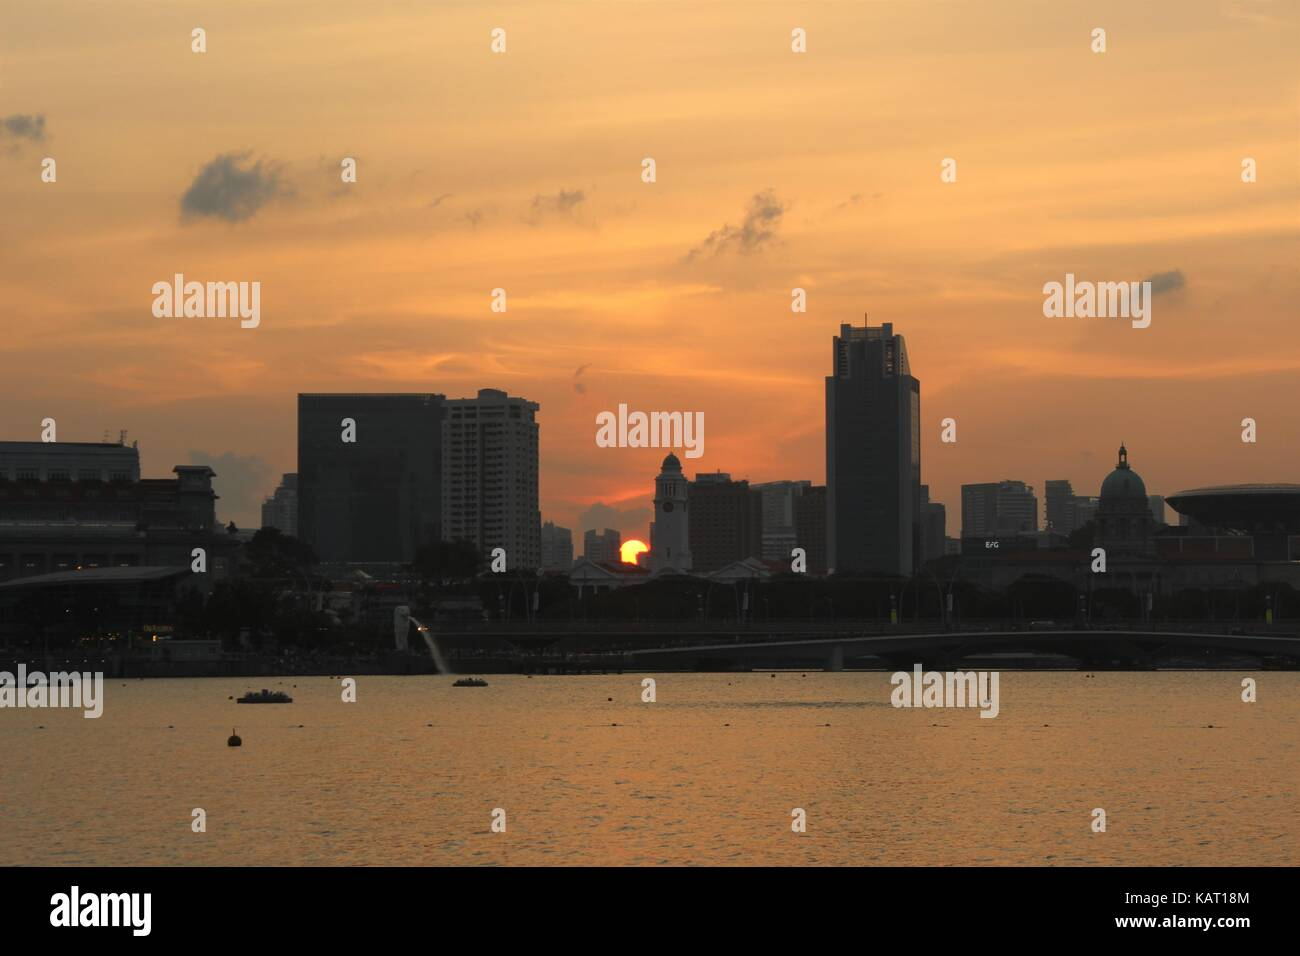 Sunset in Singapore - Stock Image